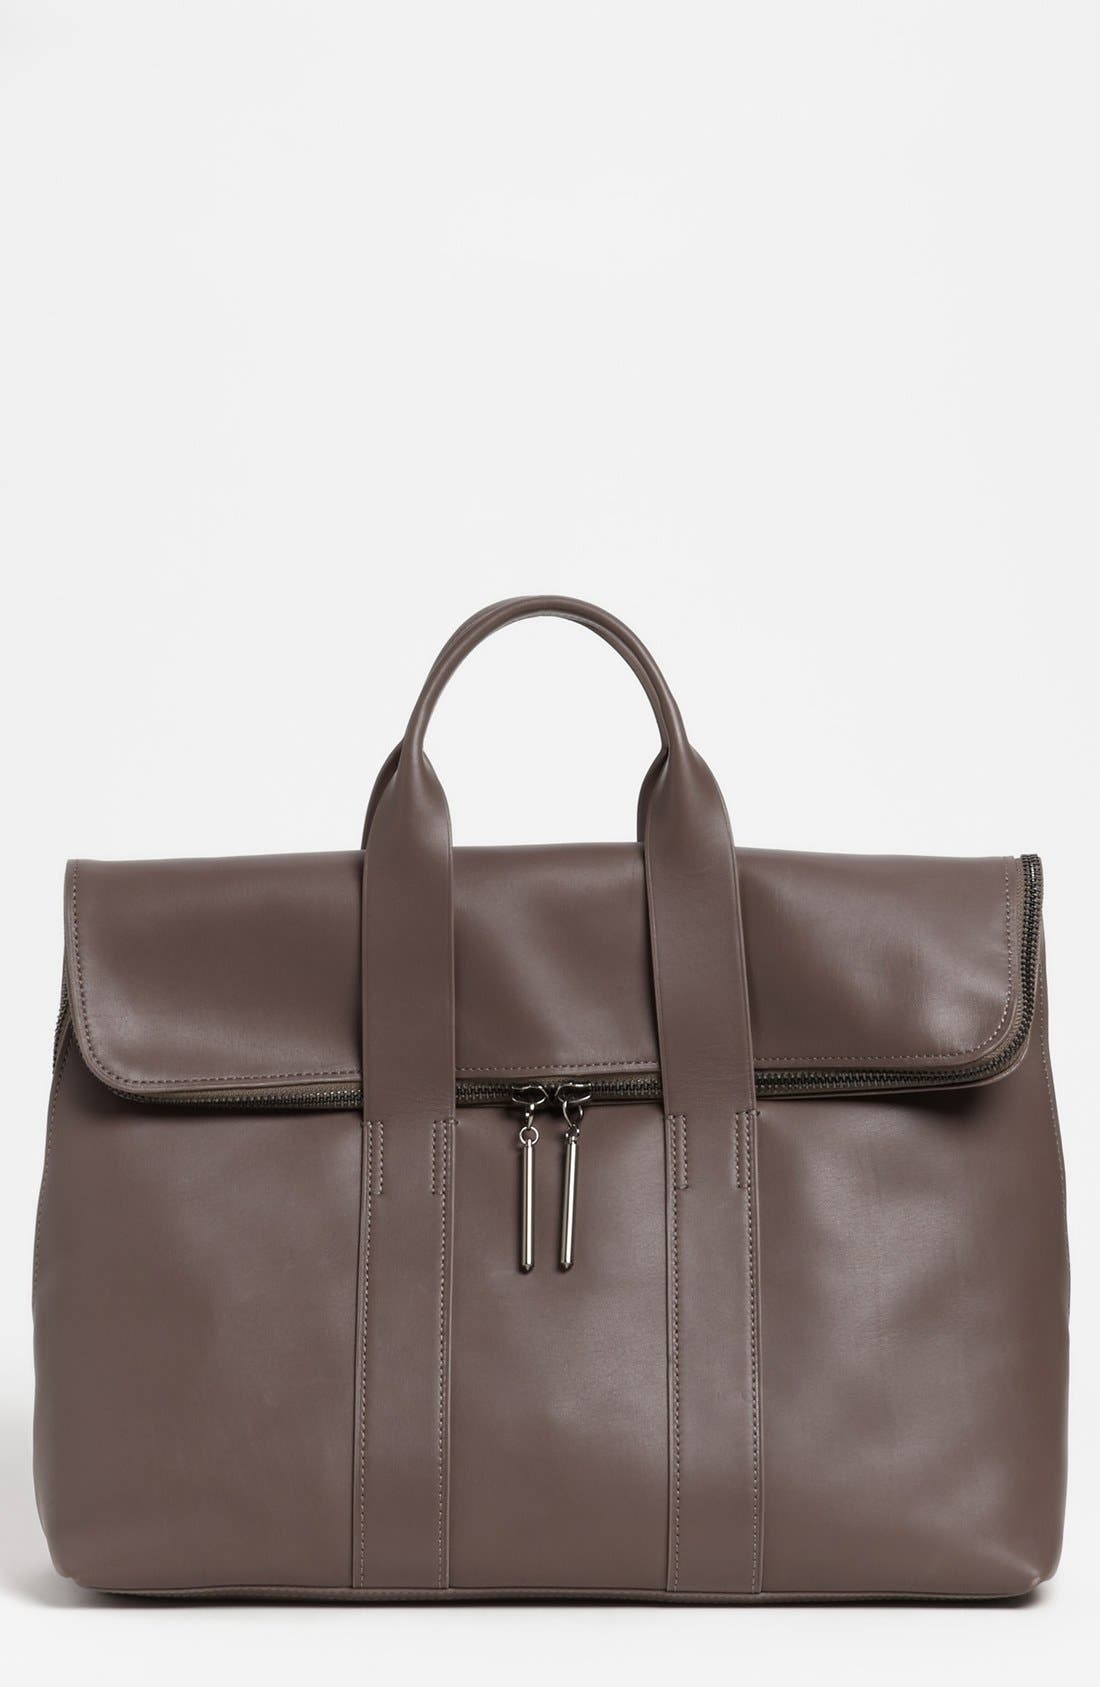 Main Image - 3.1 Phillip Lim '31 Hour' Leather Tote